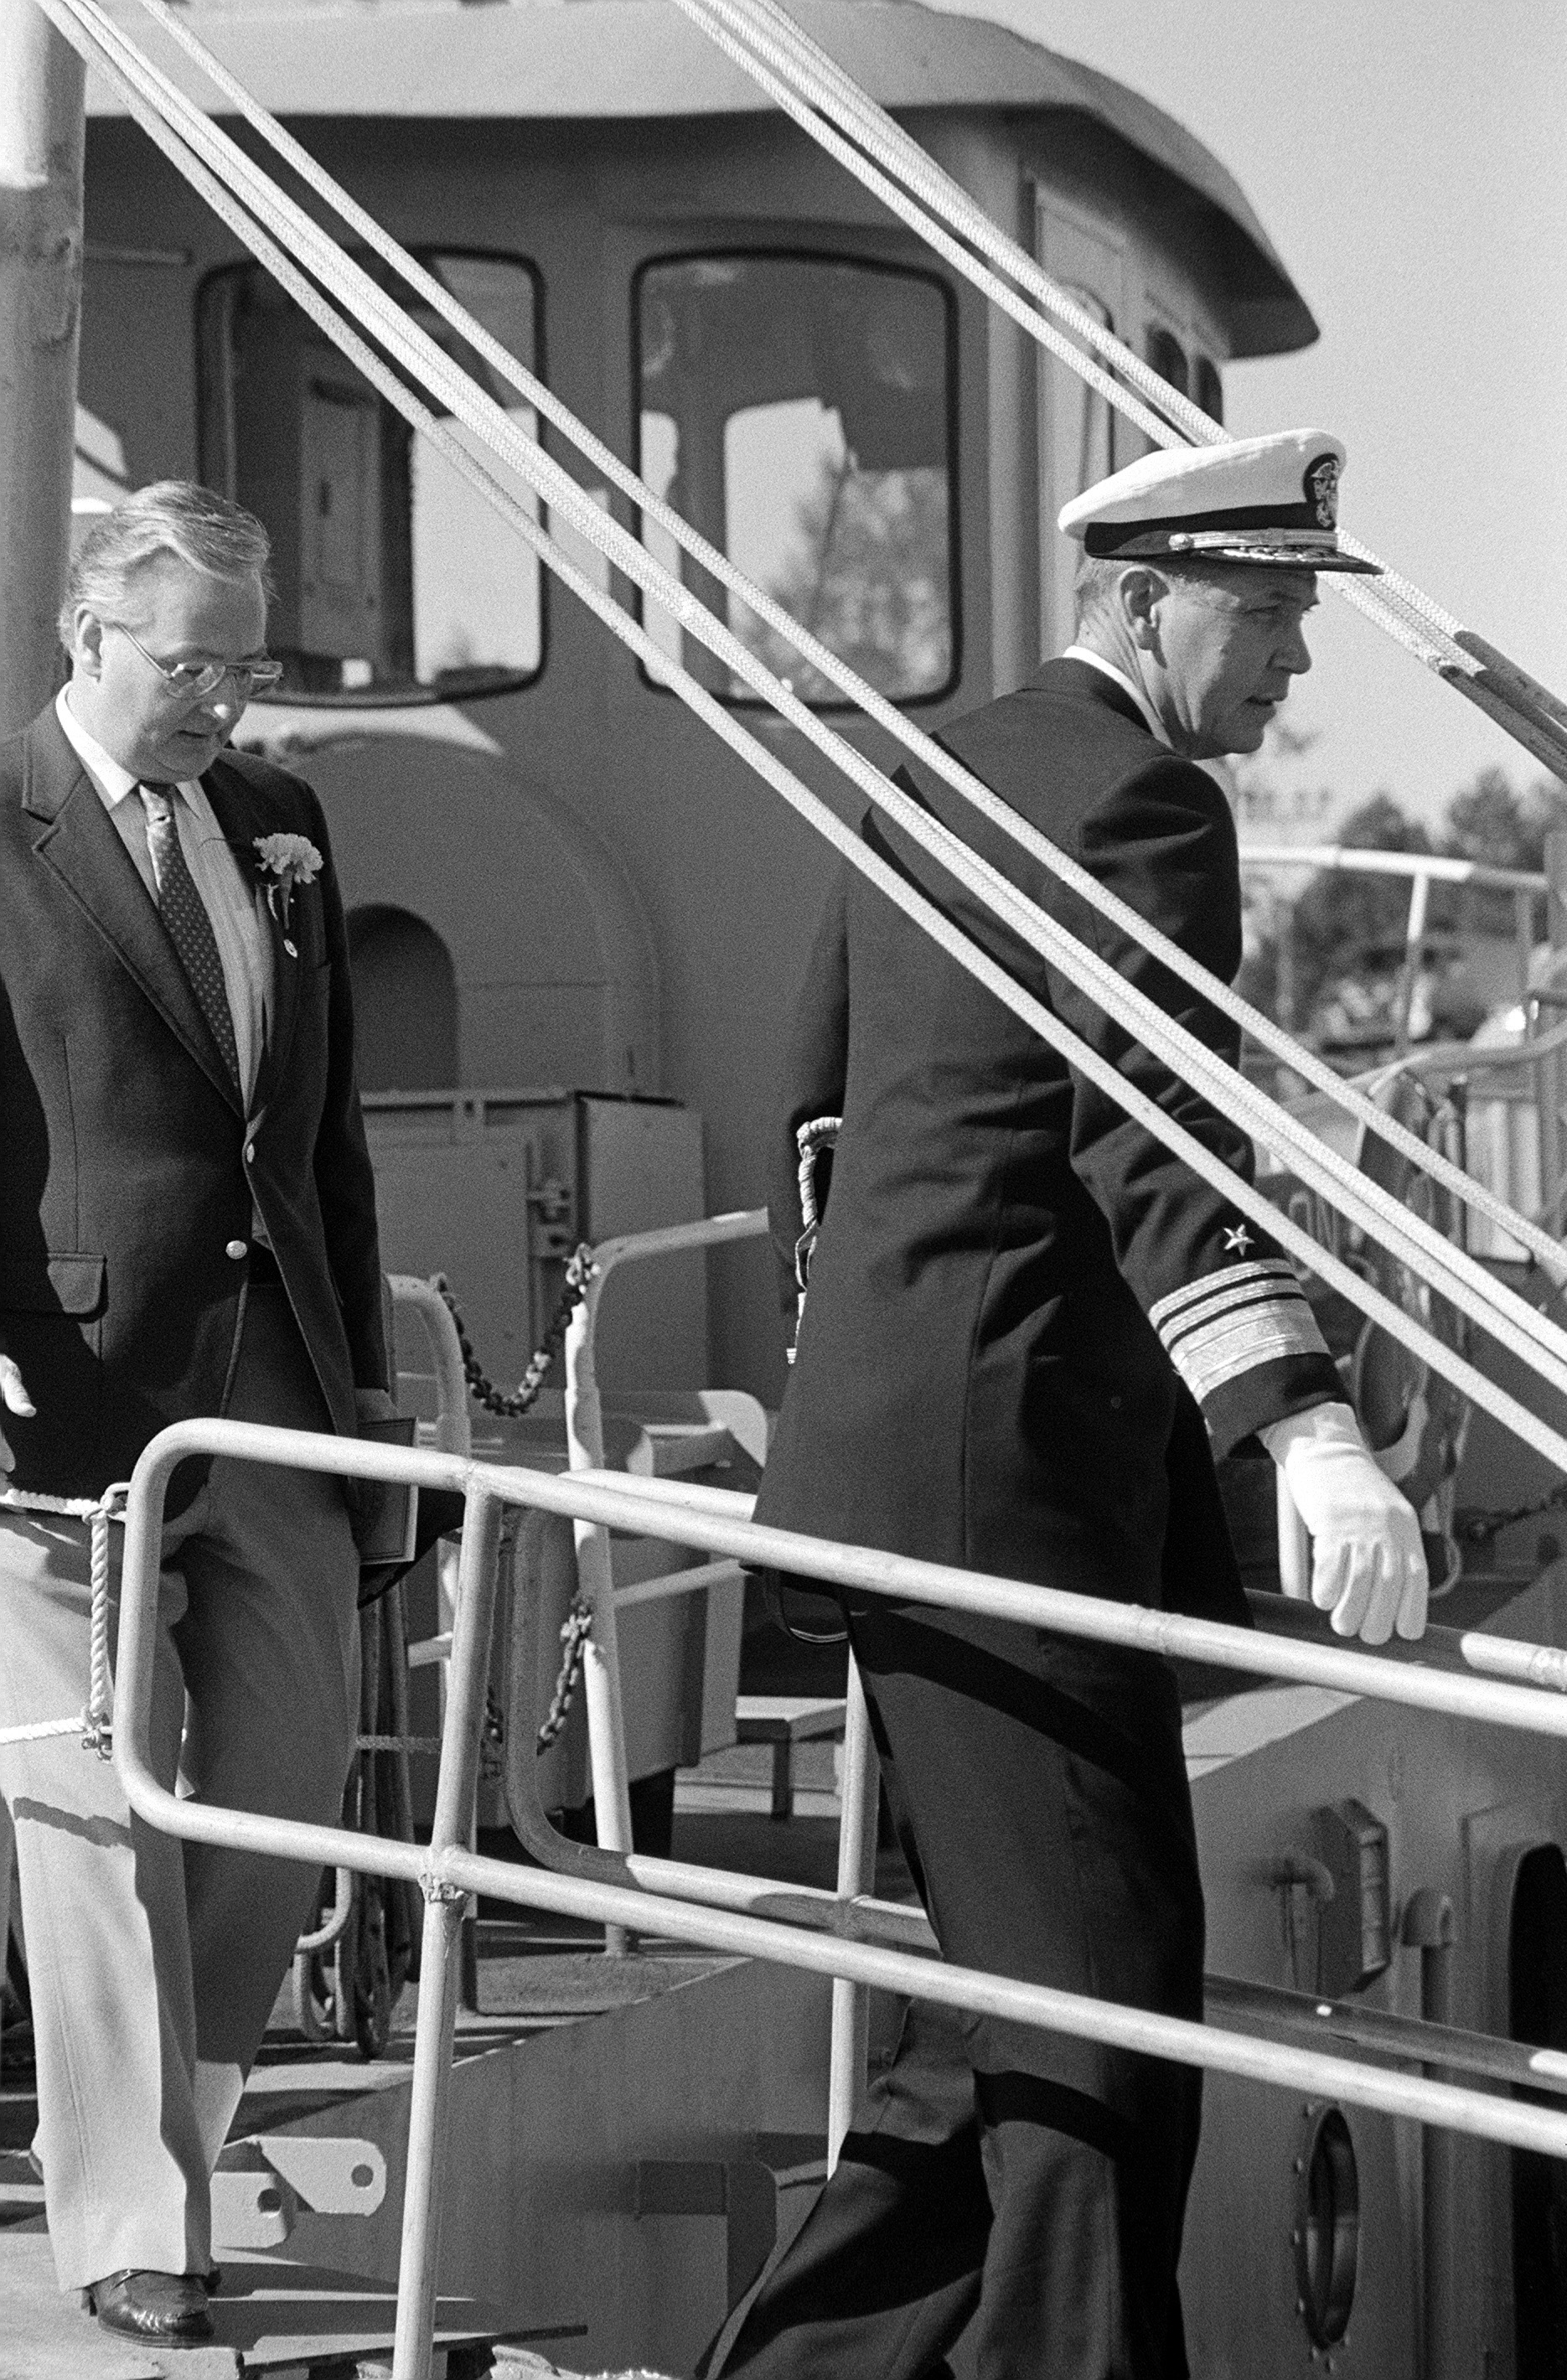 Vice Admiral (VADM) Nils R. Thunman, deputy chief of naval operations, submarine warfare, boards the nuclear-powered strategic missile submarine USS HENRY M. JACKSON (SSBN 730) for a tour at the conclusion of the commissioning